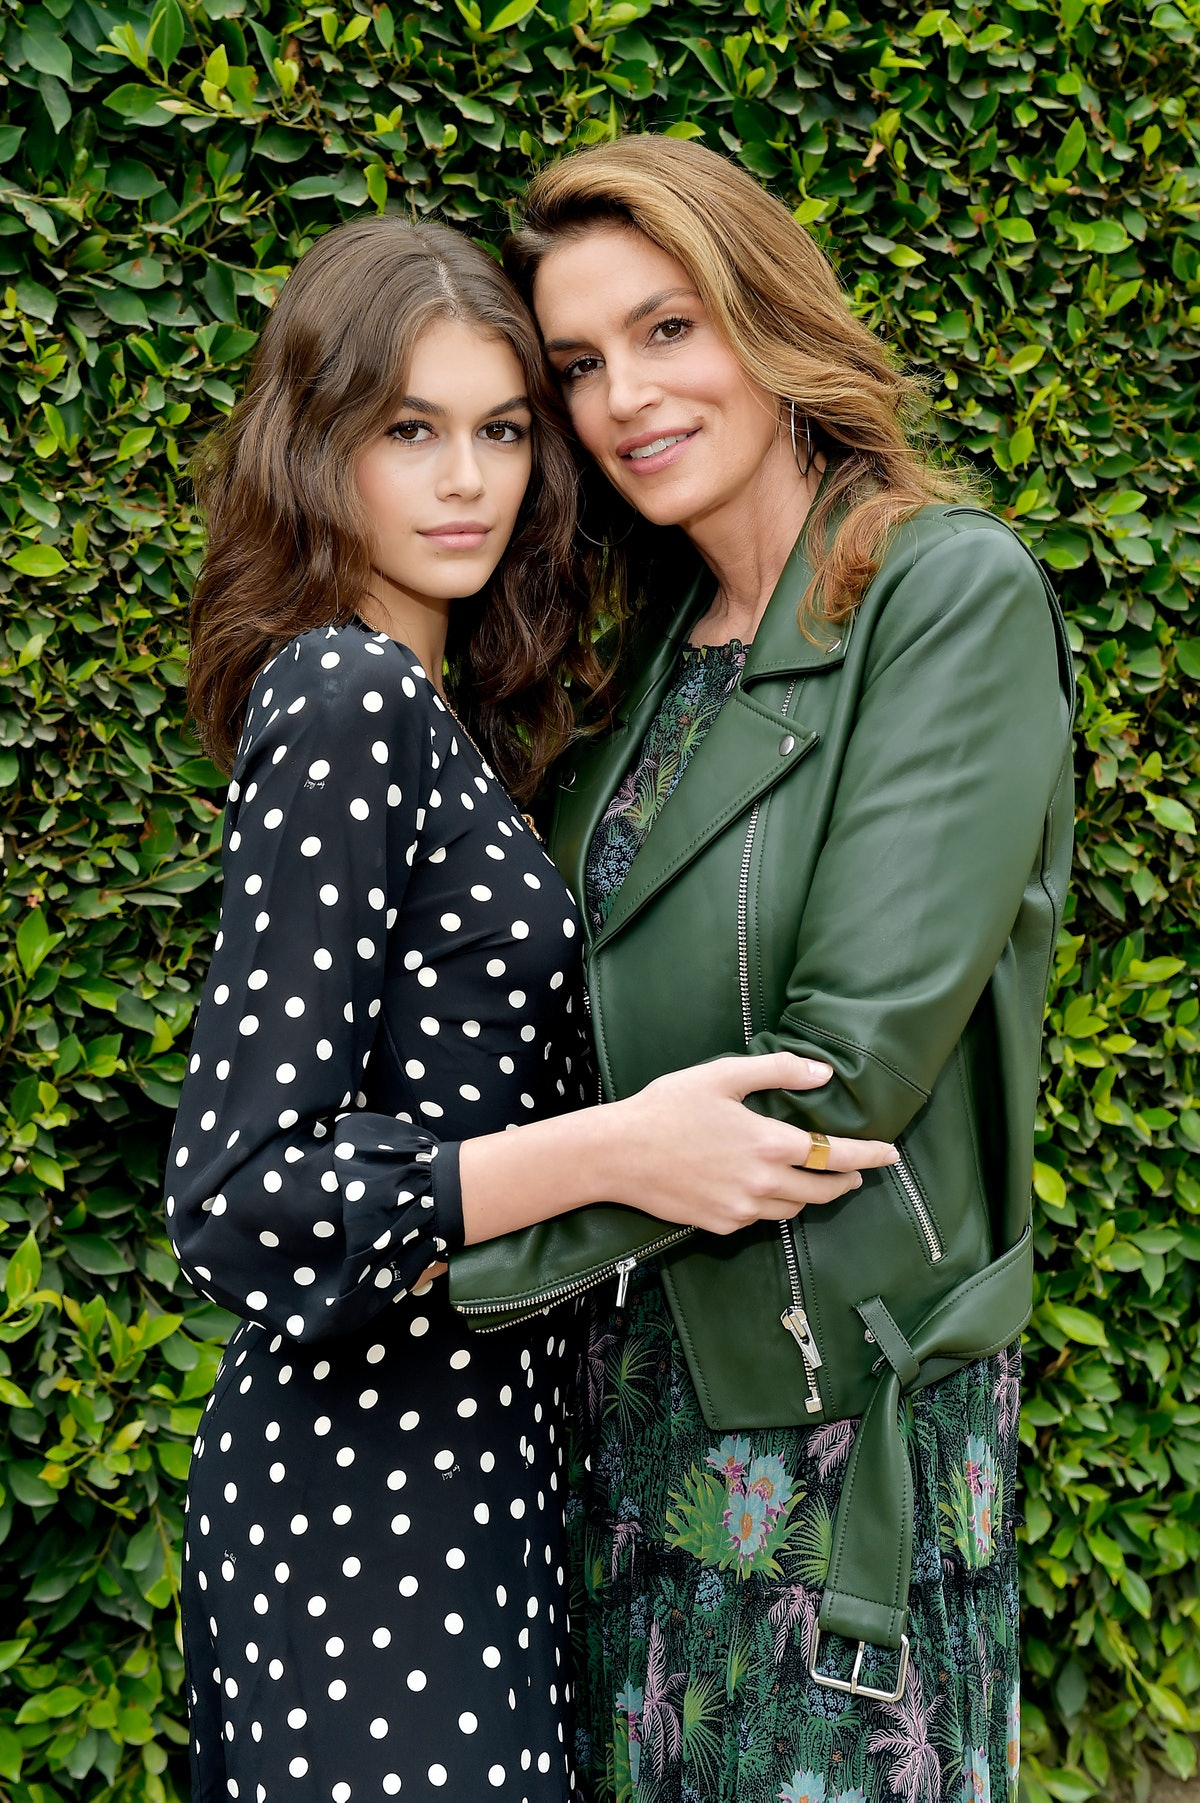 Cindy Crawford and Kaia Gerber attend 2018 Best Buddies Mother's Day Brunch.